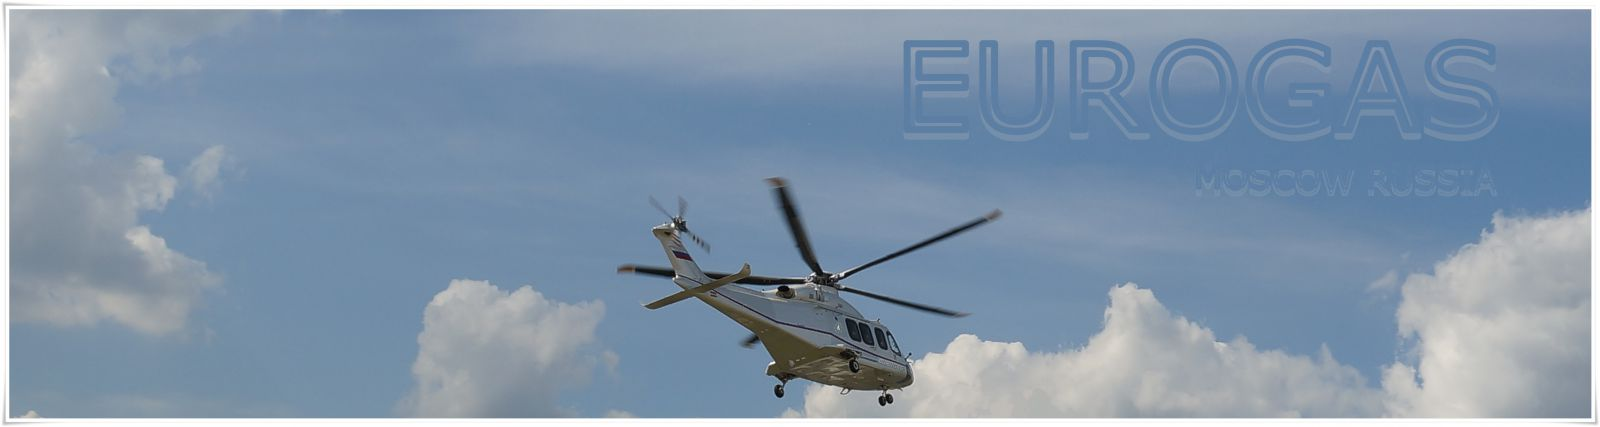 EUROGAS MOSCOW RUSSIA, AGNKS, AGZS, VERTOLET, HUBSCHRAUBER, HELICOPTER, CNG STATION, METAN